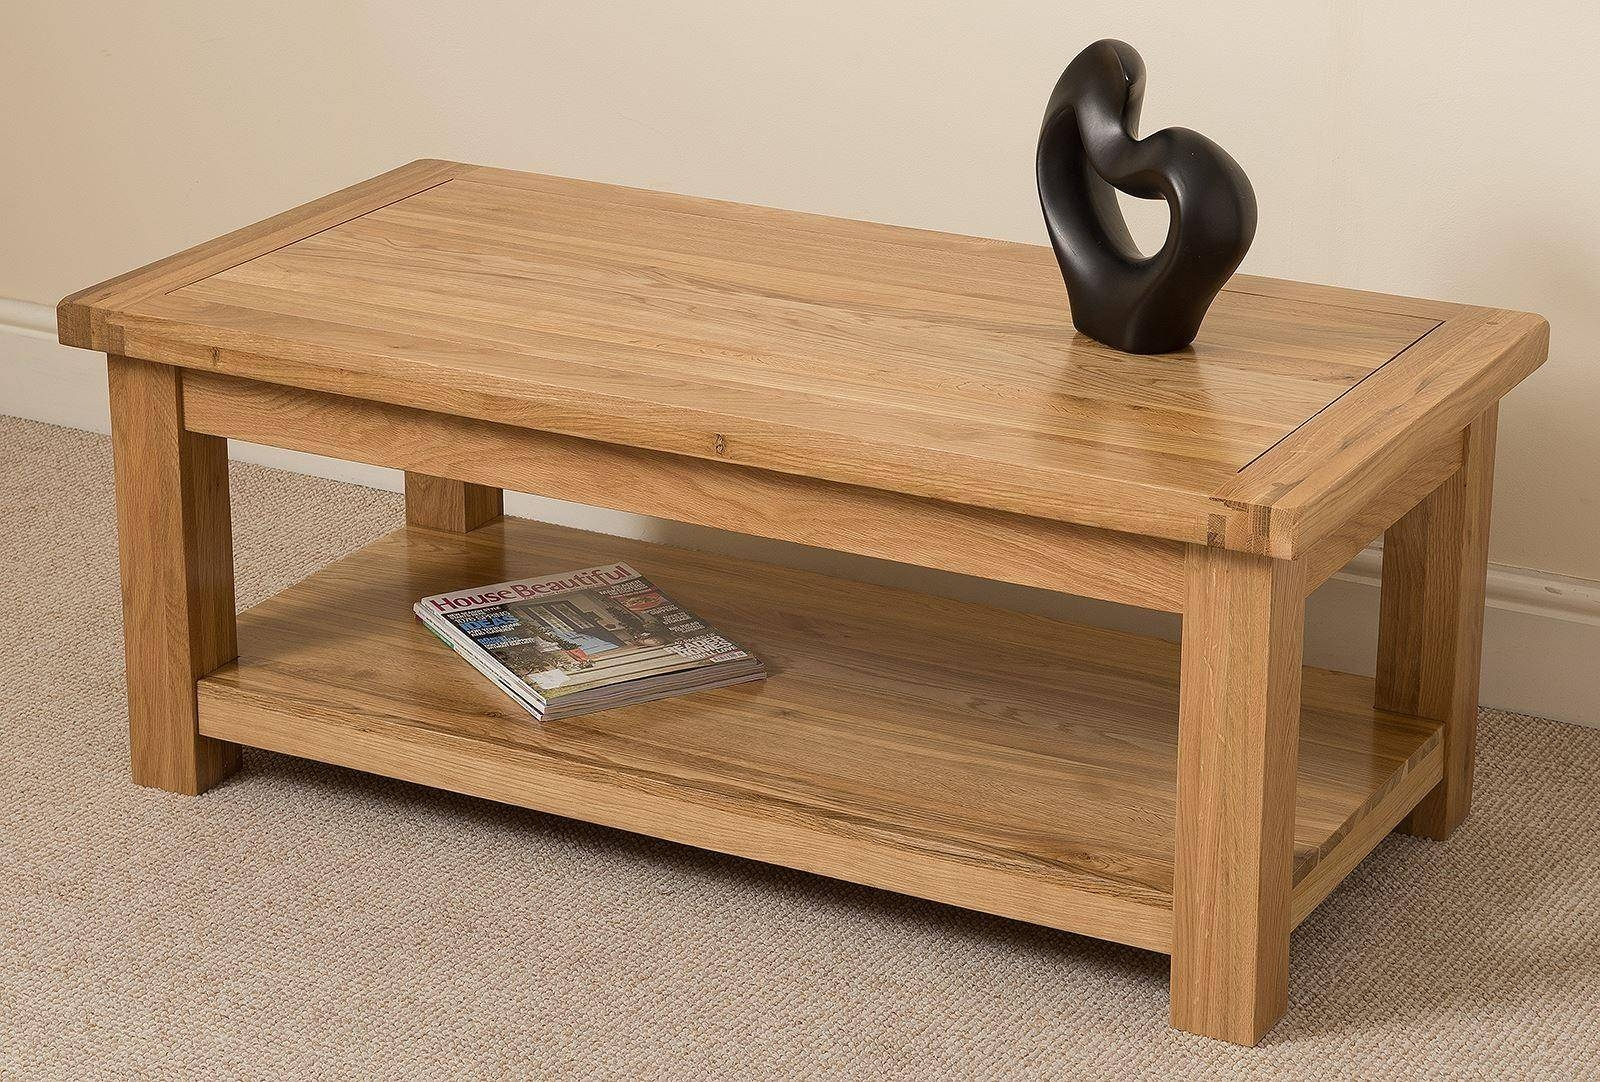 Cottage Light Solid Oak Coffee Table | Oak Furniture King intended for Light Oak Coffee Tables (Image 5 of 15)